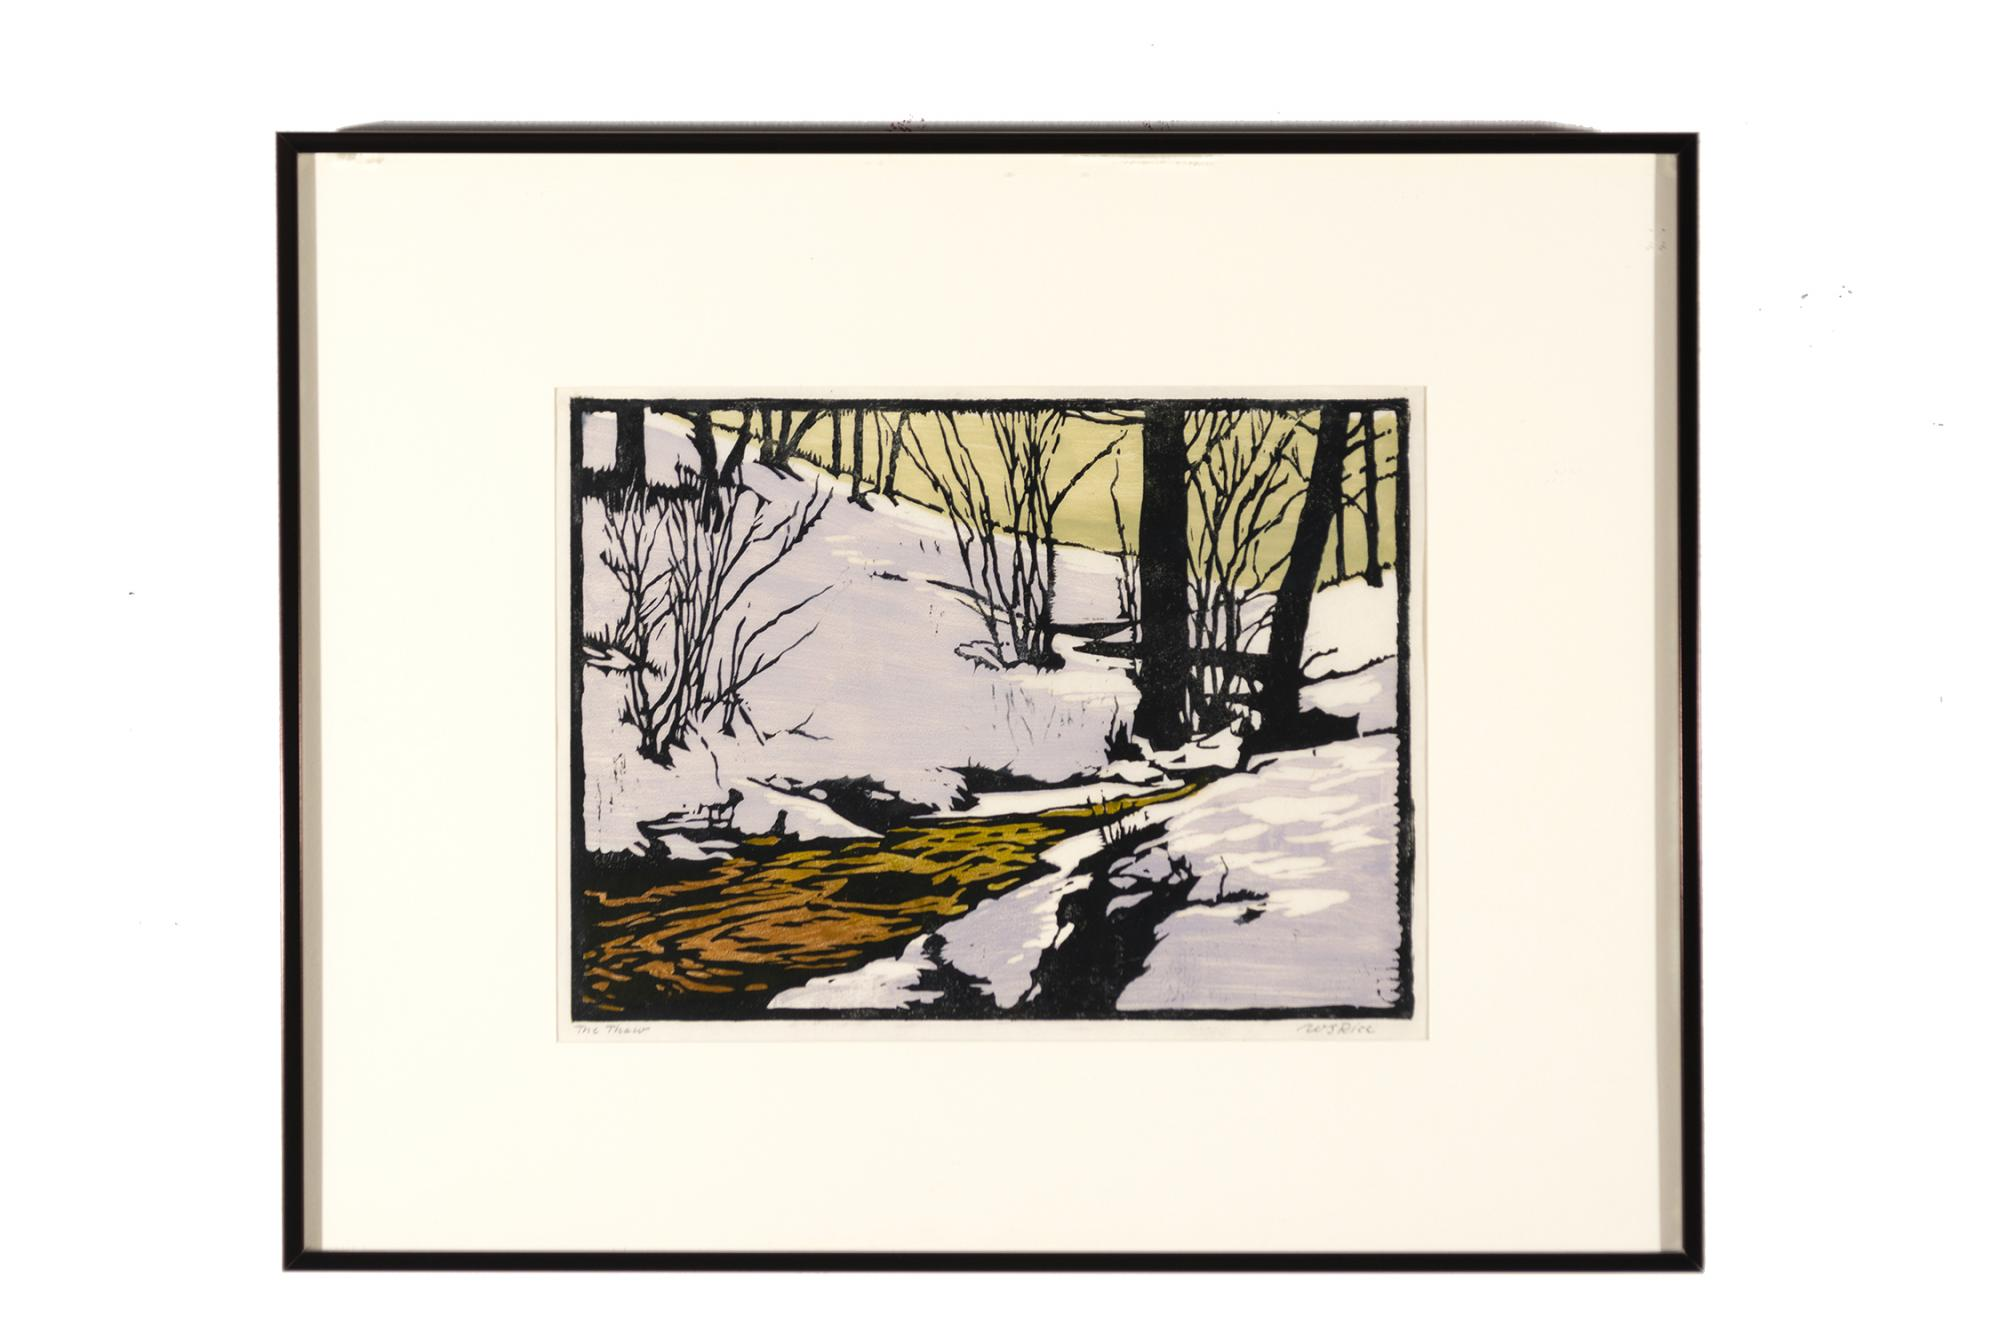 William S. Rice (1873–1963) The Thaw, c. 1920, Color woodcut, College purchase [85.1]